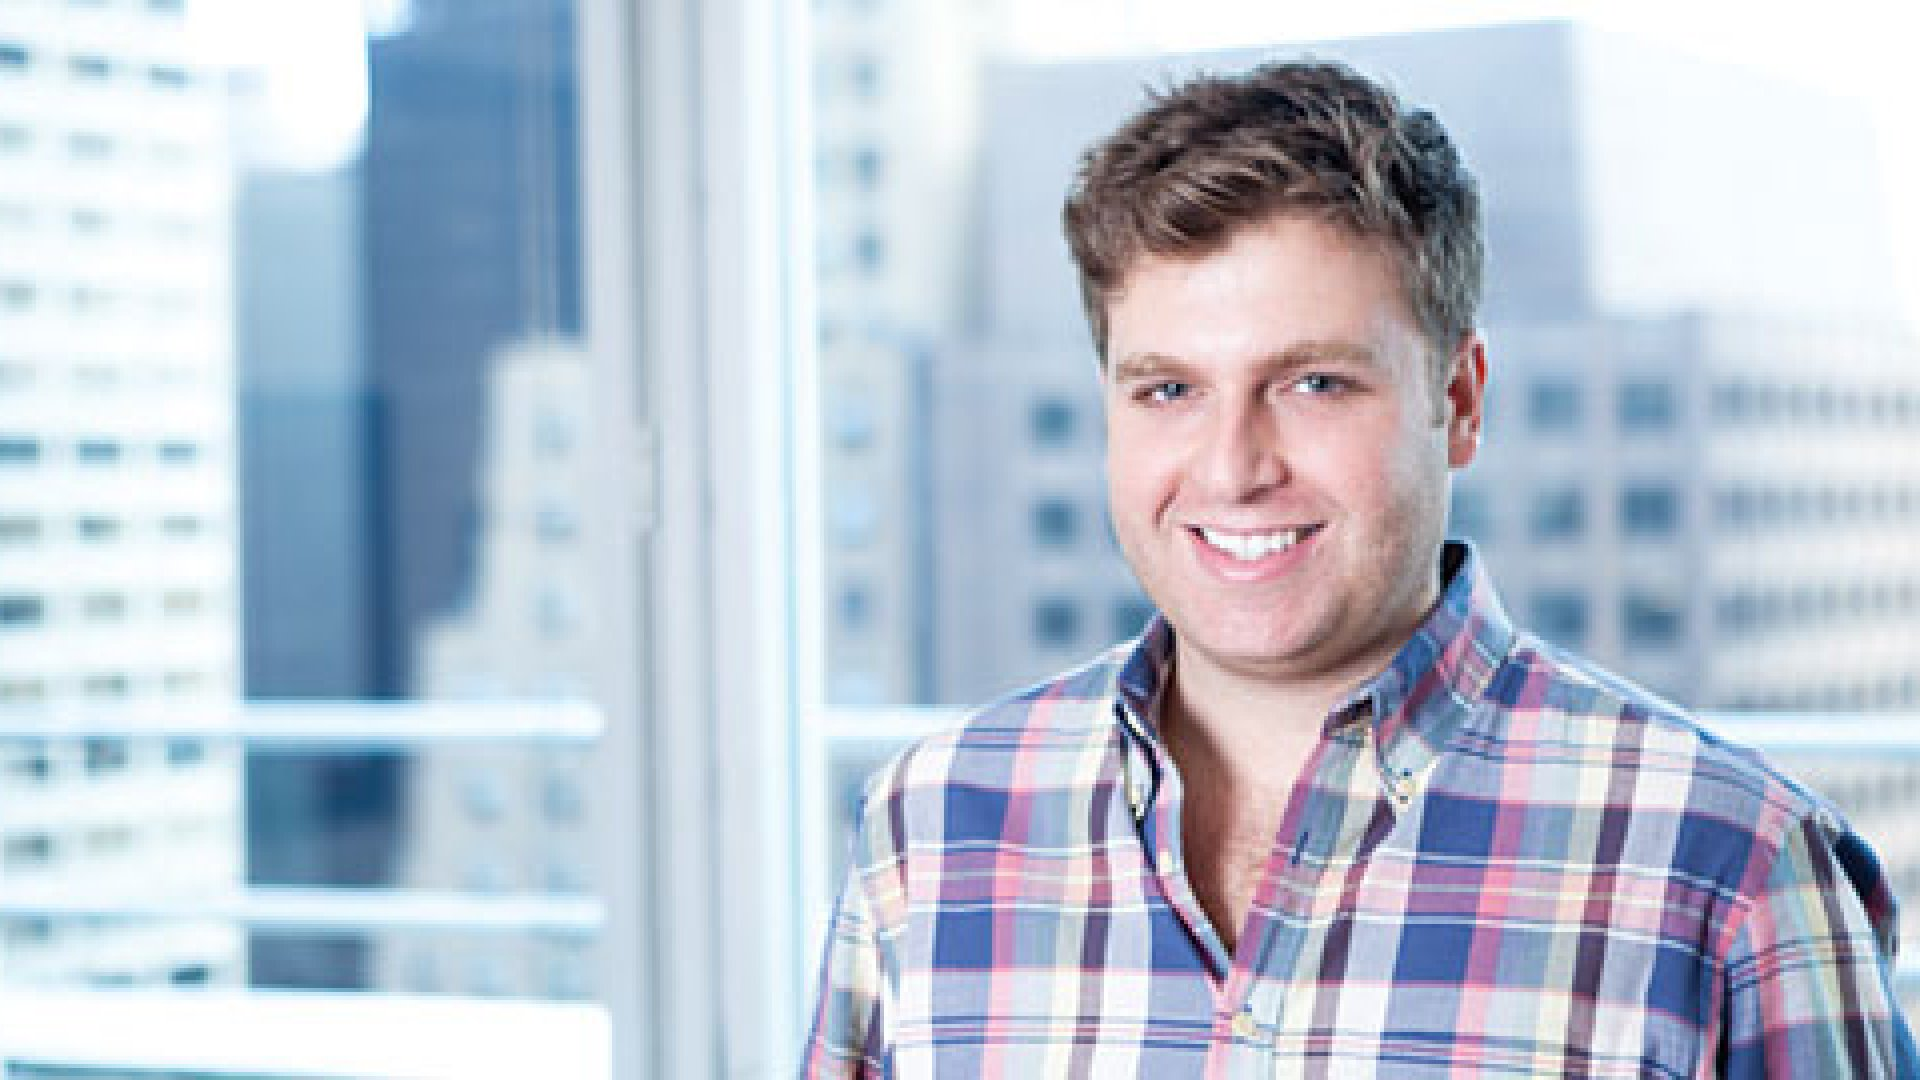 <strong>He's Huge in India:</strong> Adam Sachs, co-founder of the dating site Ignighter, found unexpected success overseas.